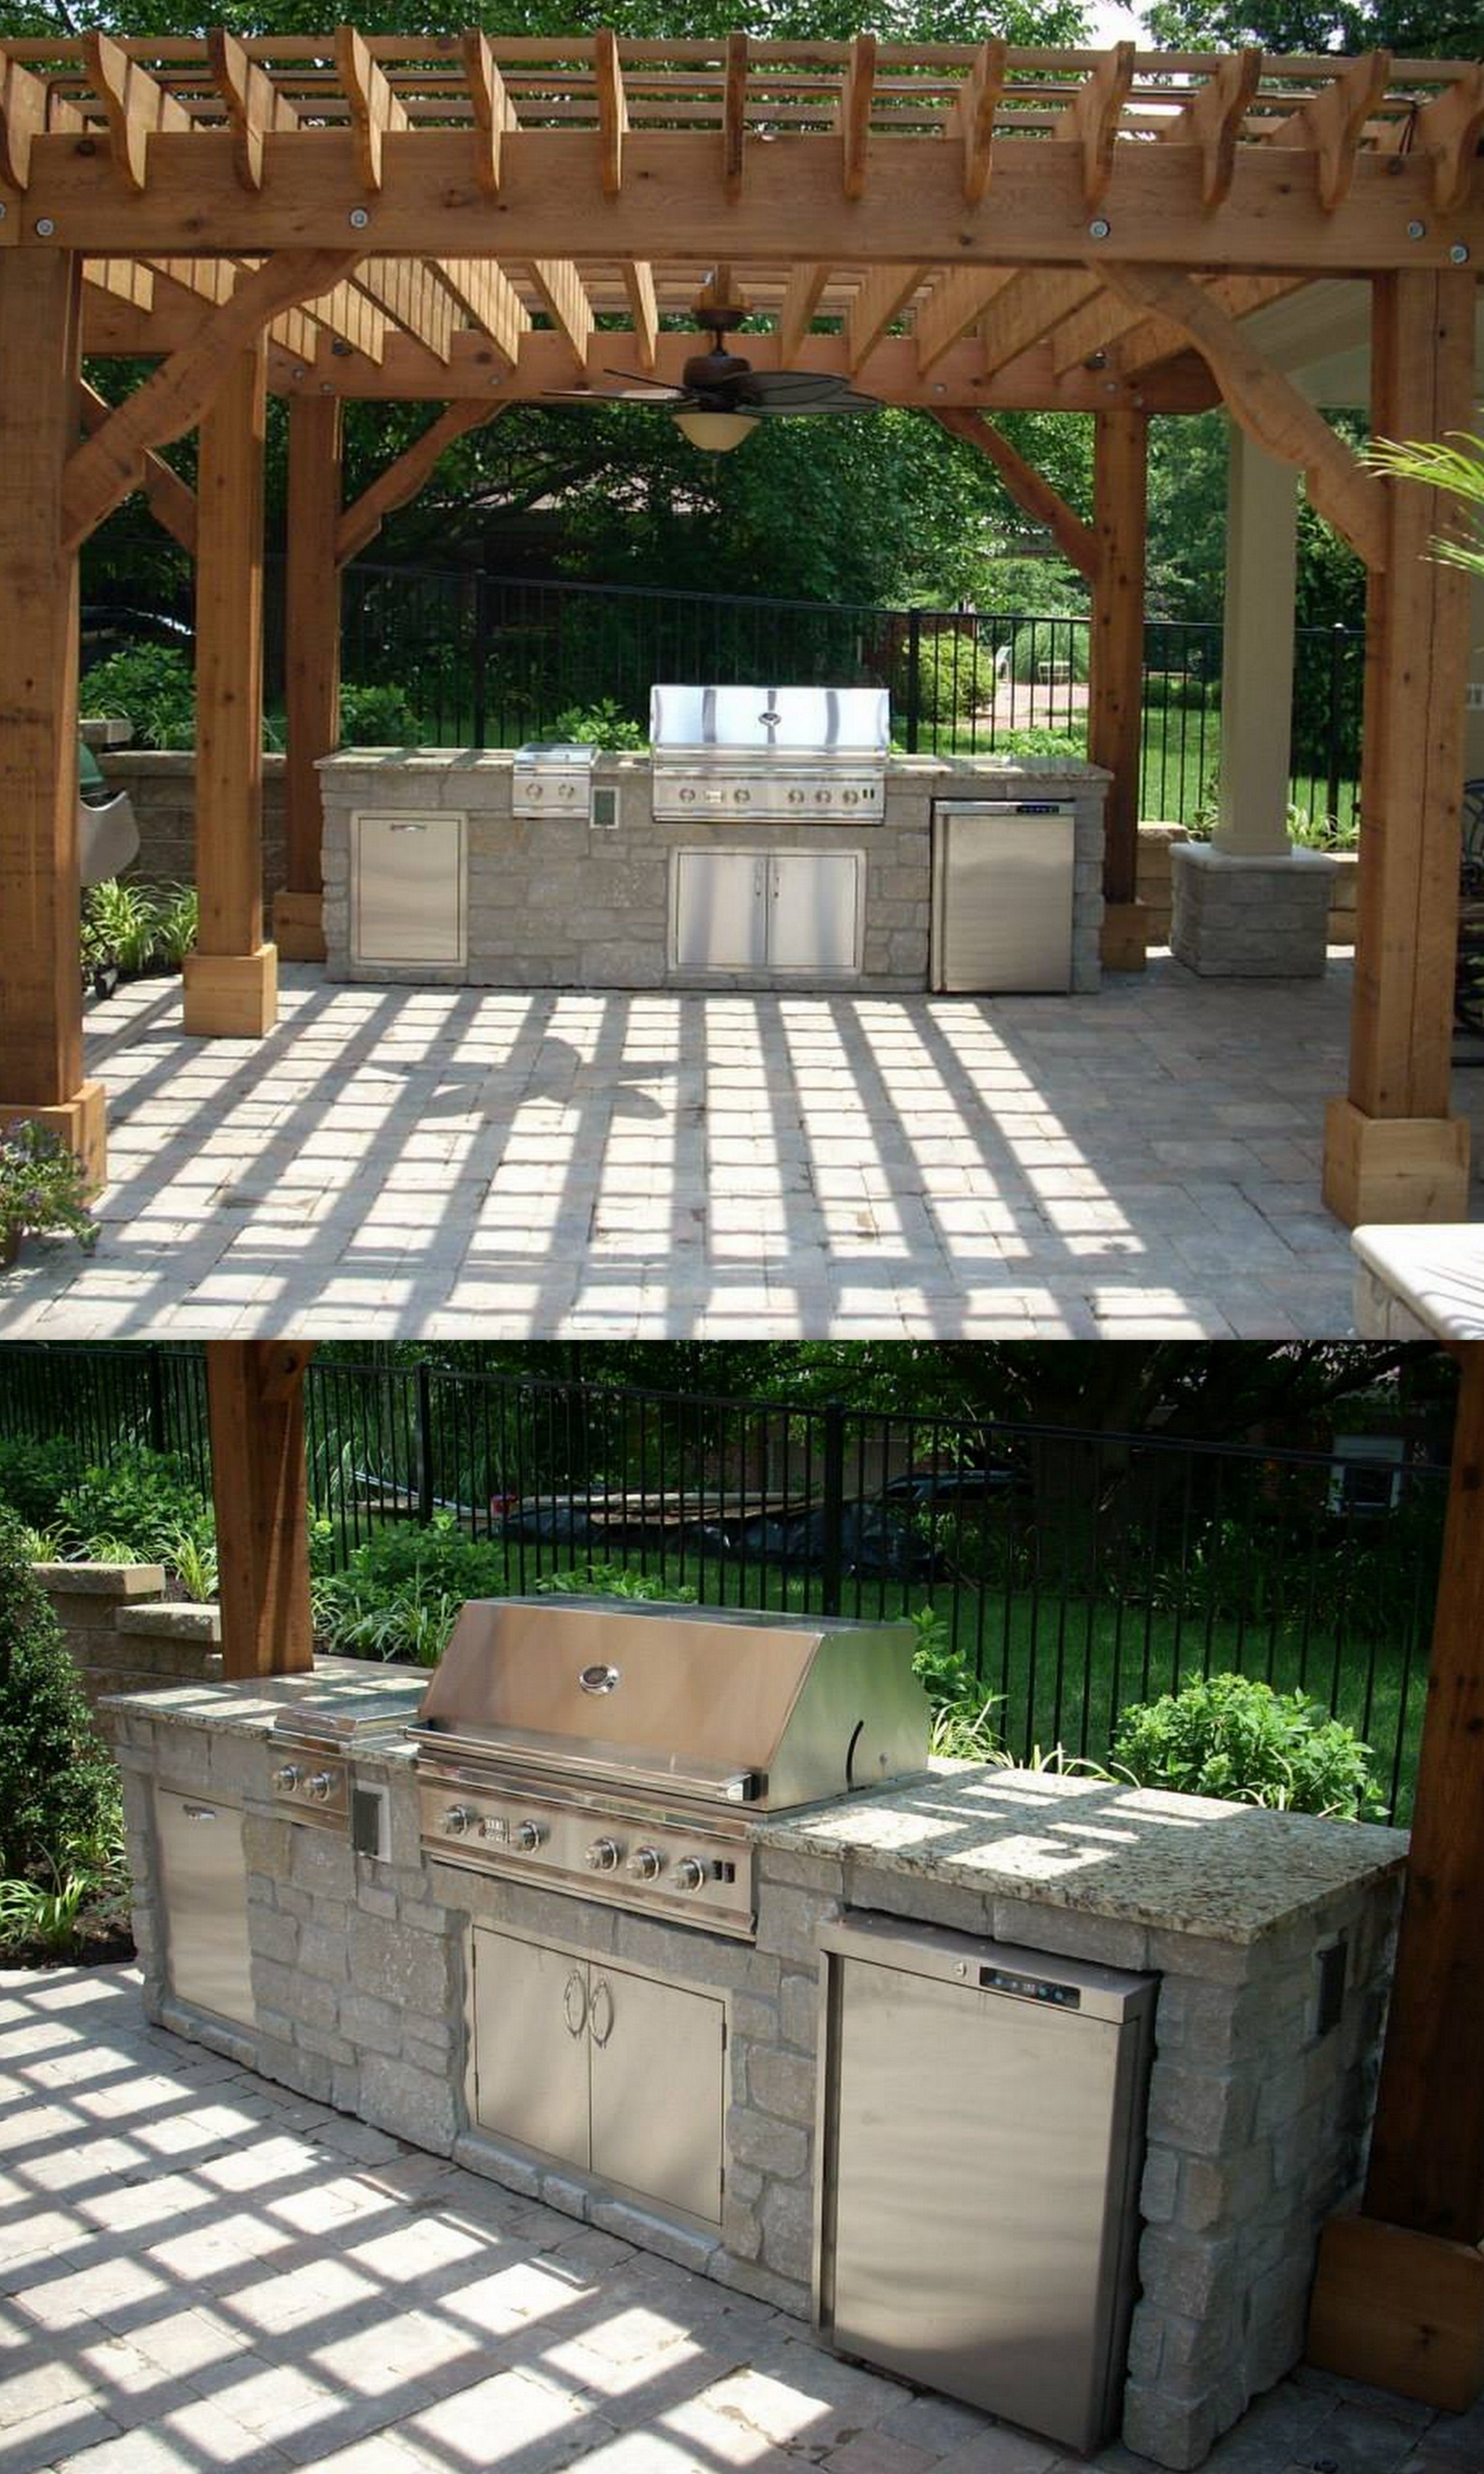 Outdoor Kitchen Under A Pergola On A Sunny Day Looks Like Heaven On Earth